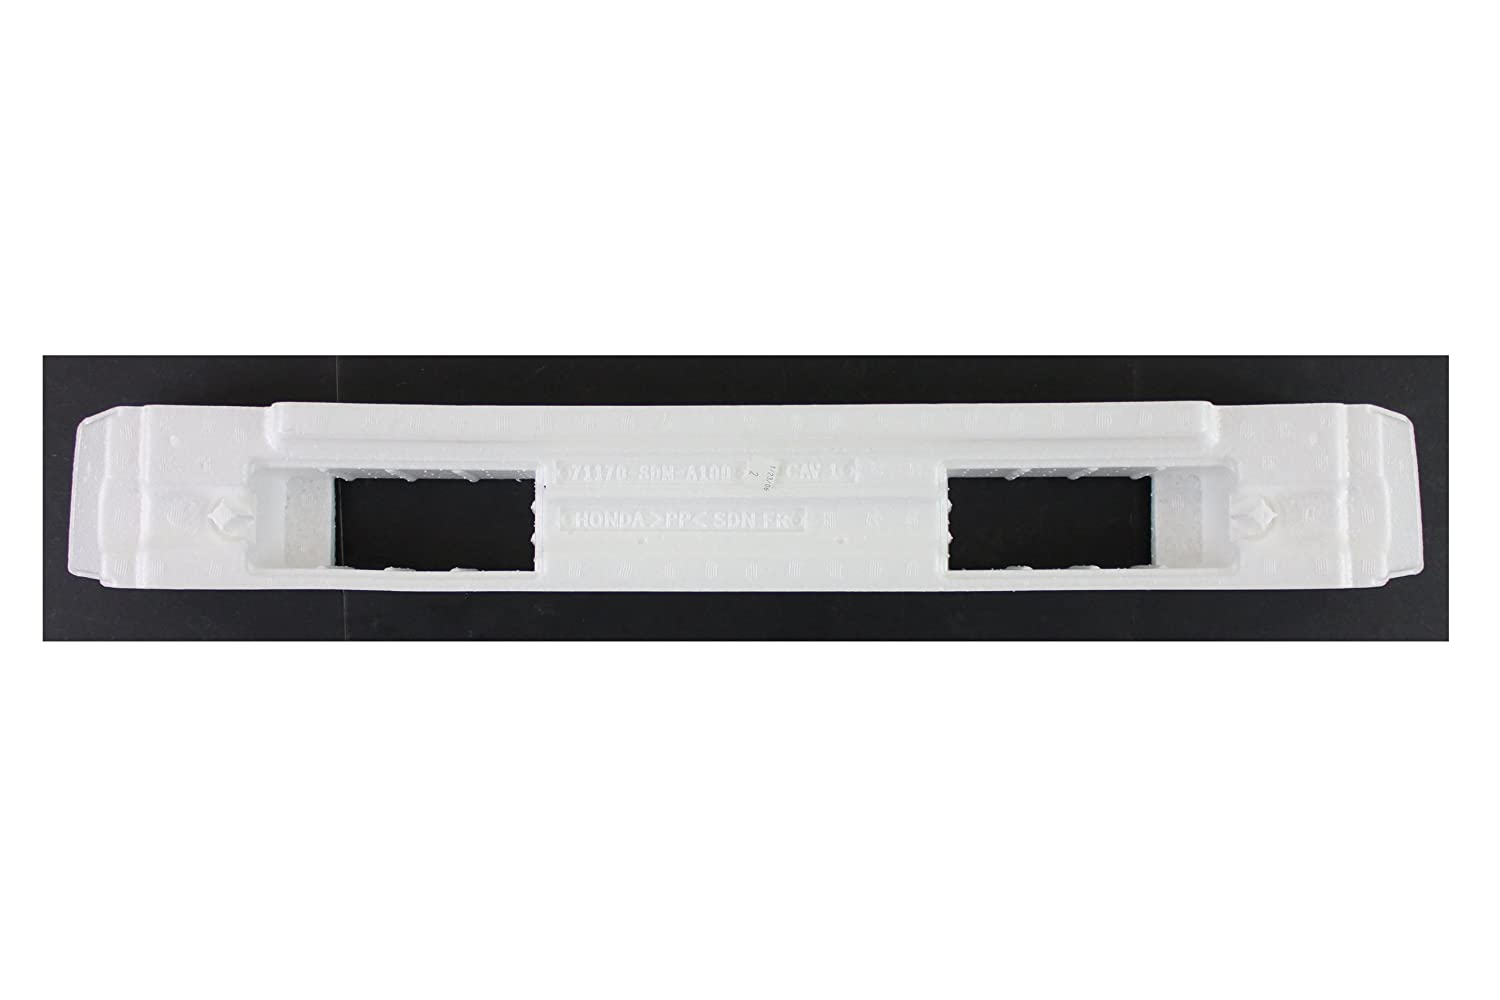 Genuine Honda Parts 71170-SDN-A10 Front Bumper Energy Absorber